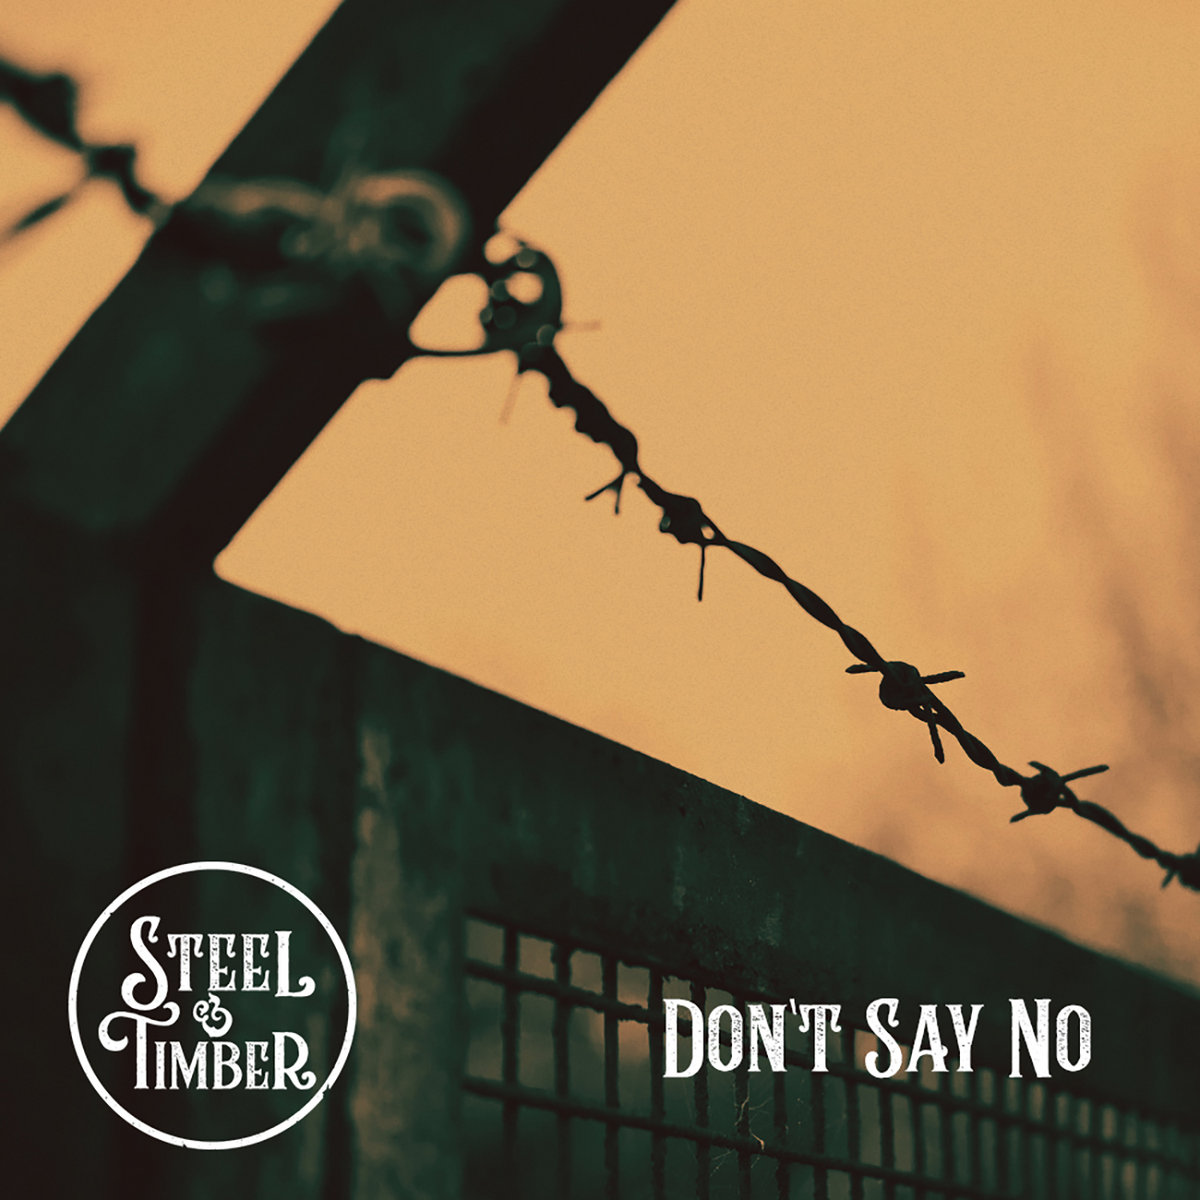 Don't Say No by Steel & Timber